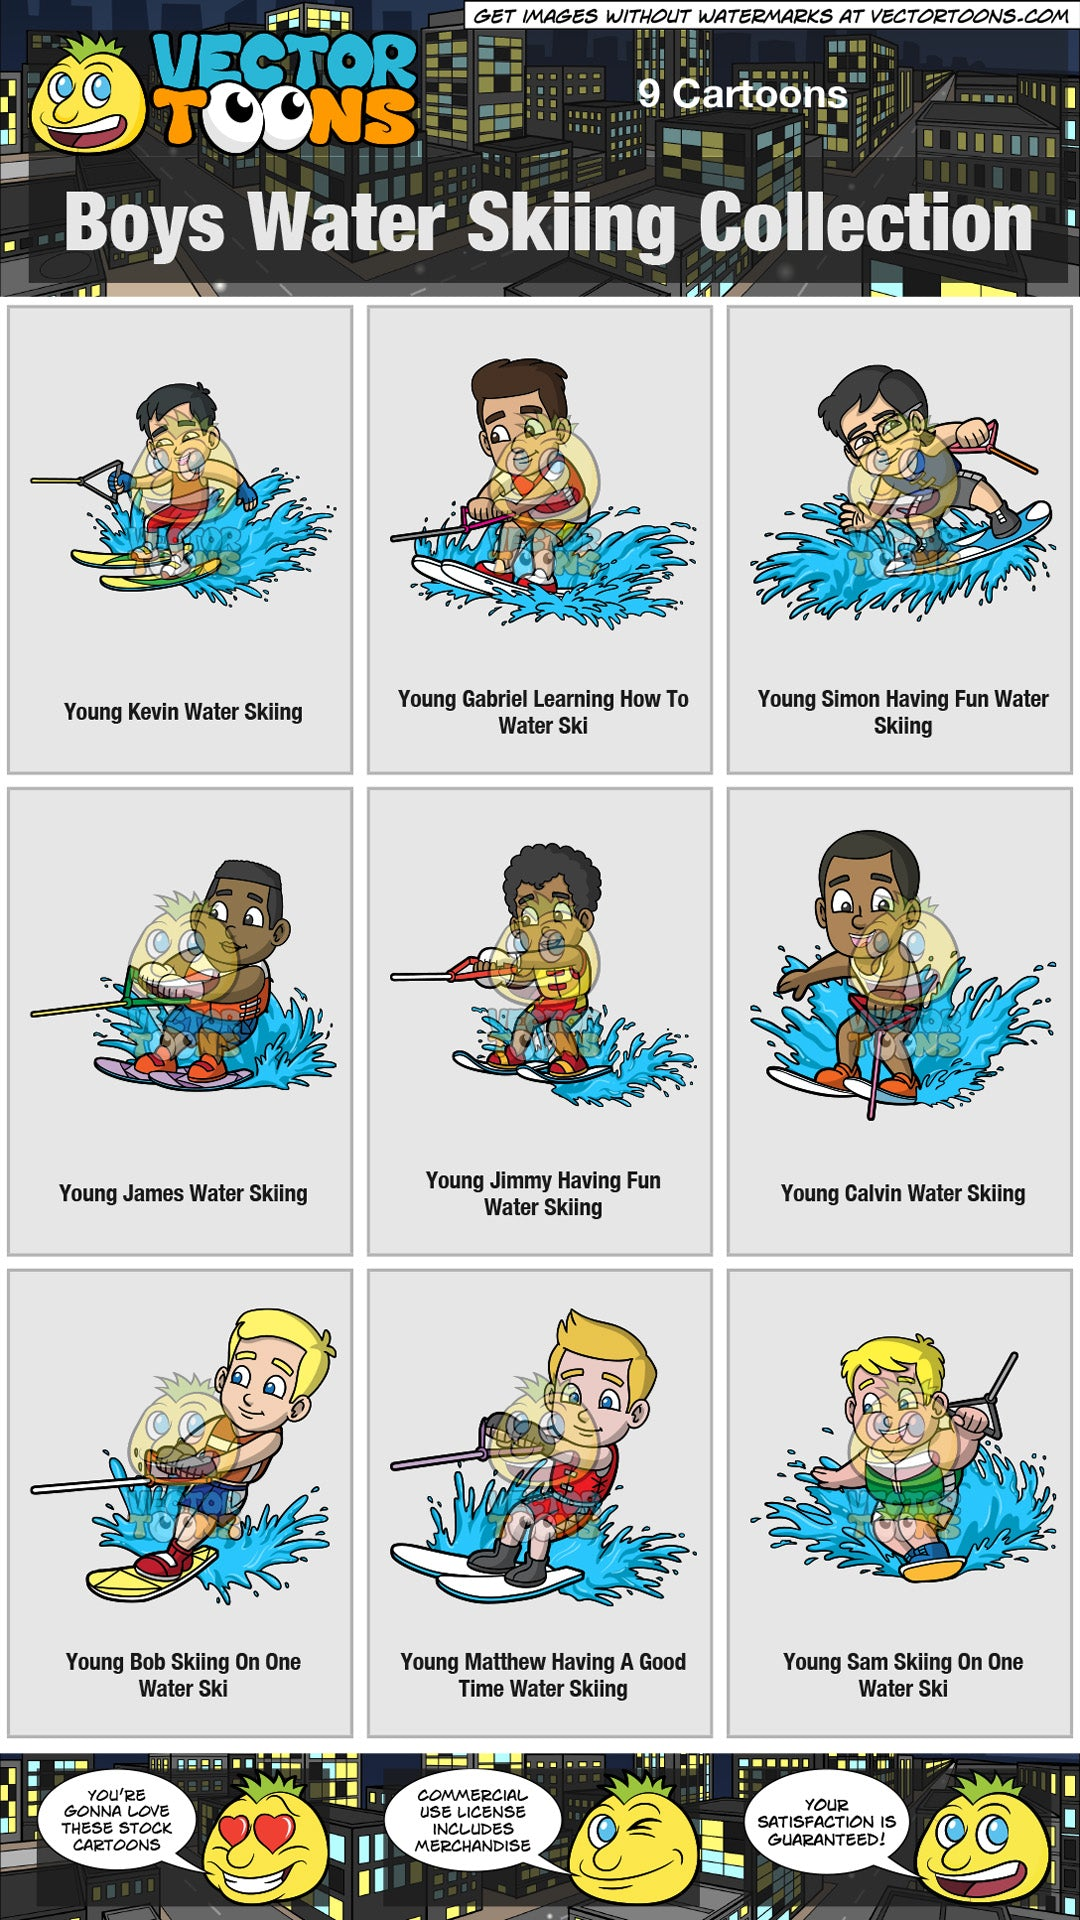 Boys Water Skiing Collection